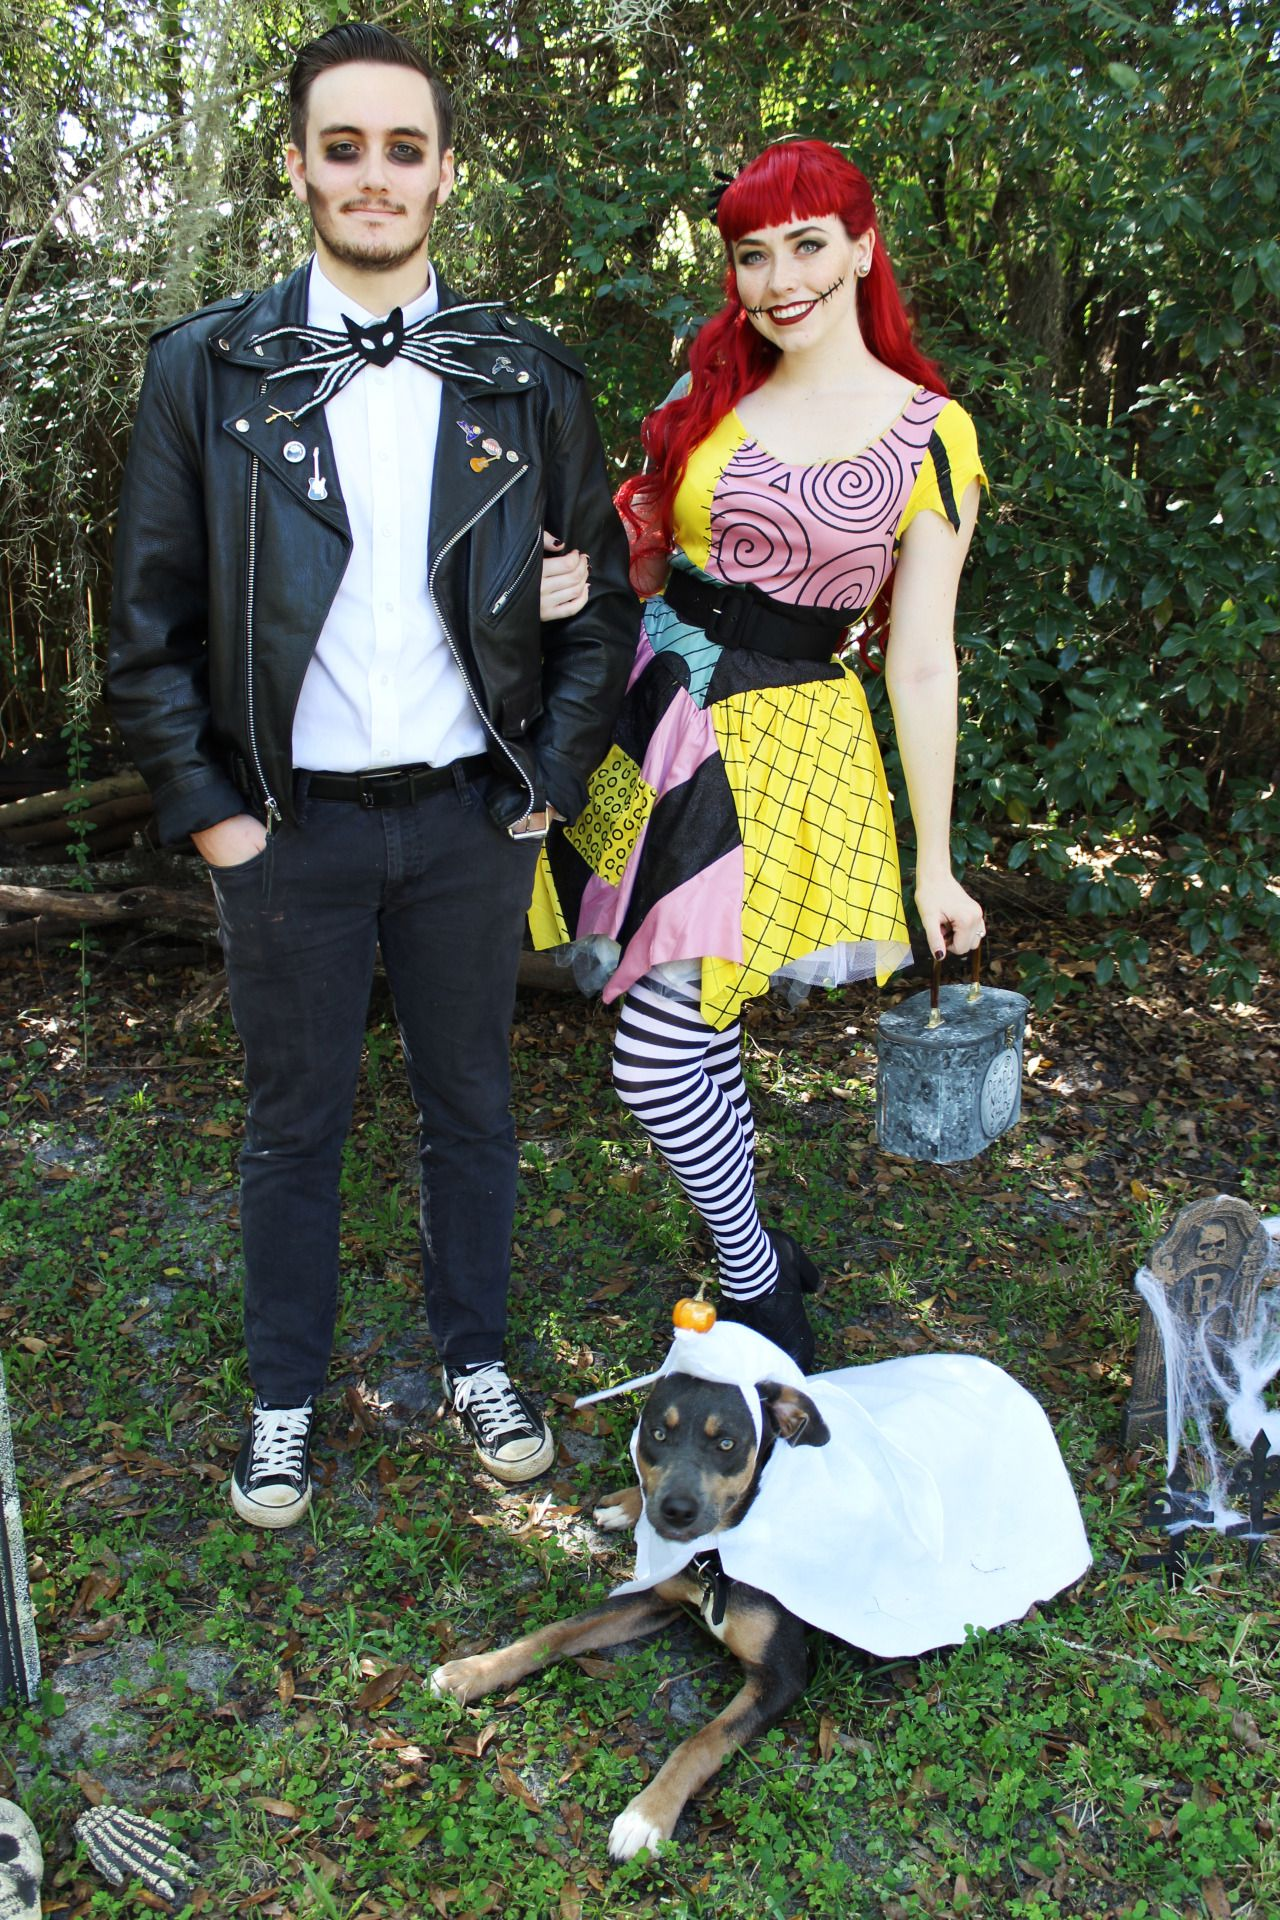 jack sally and zero costumes - Google Search | Jack and Sally ...